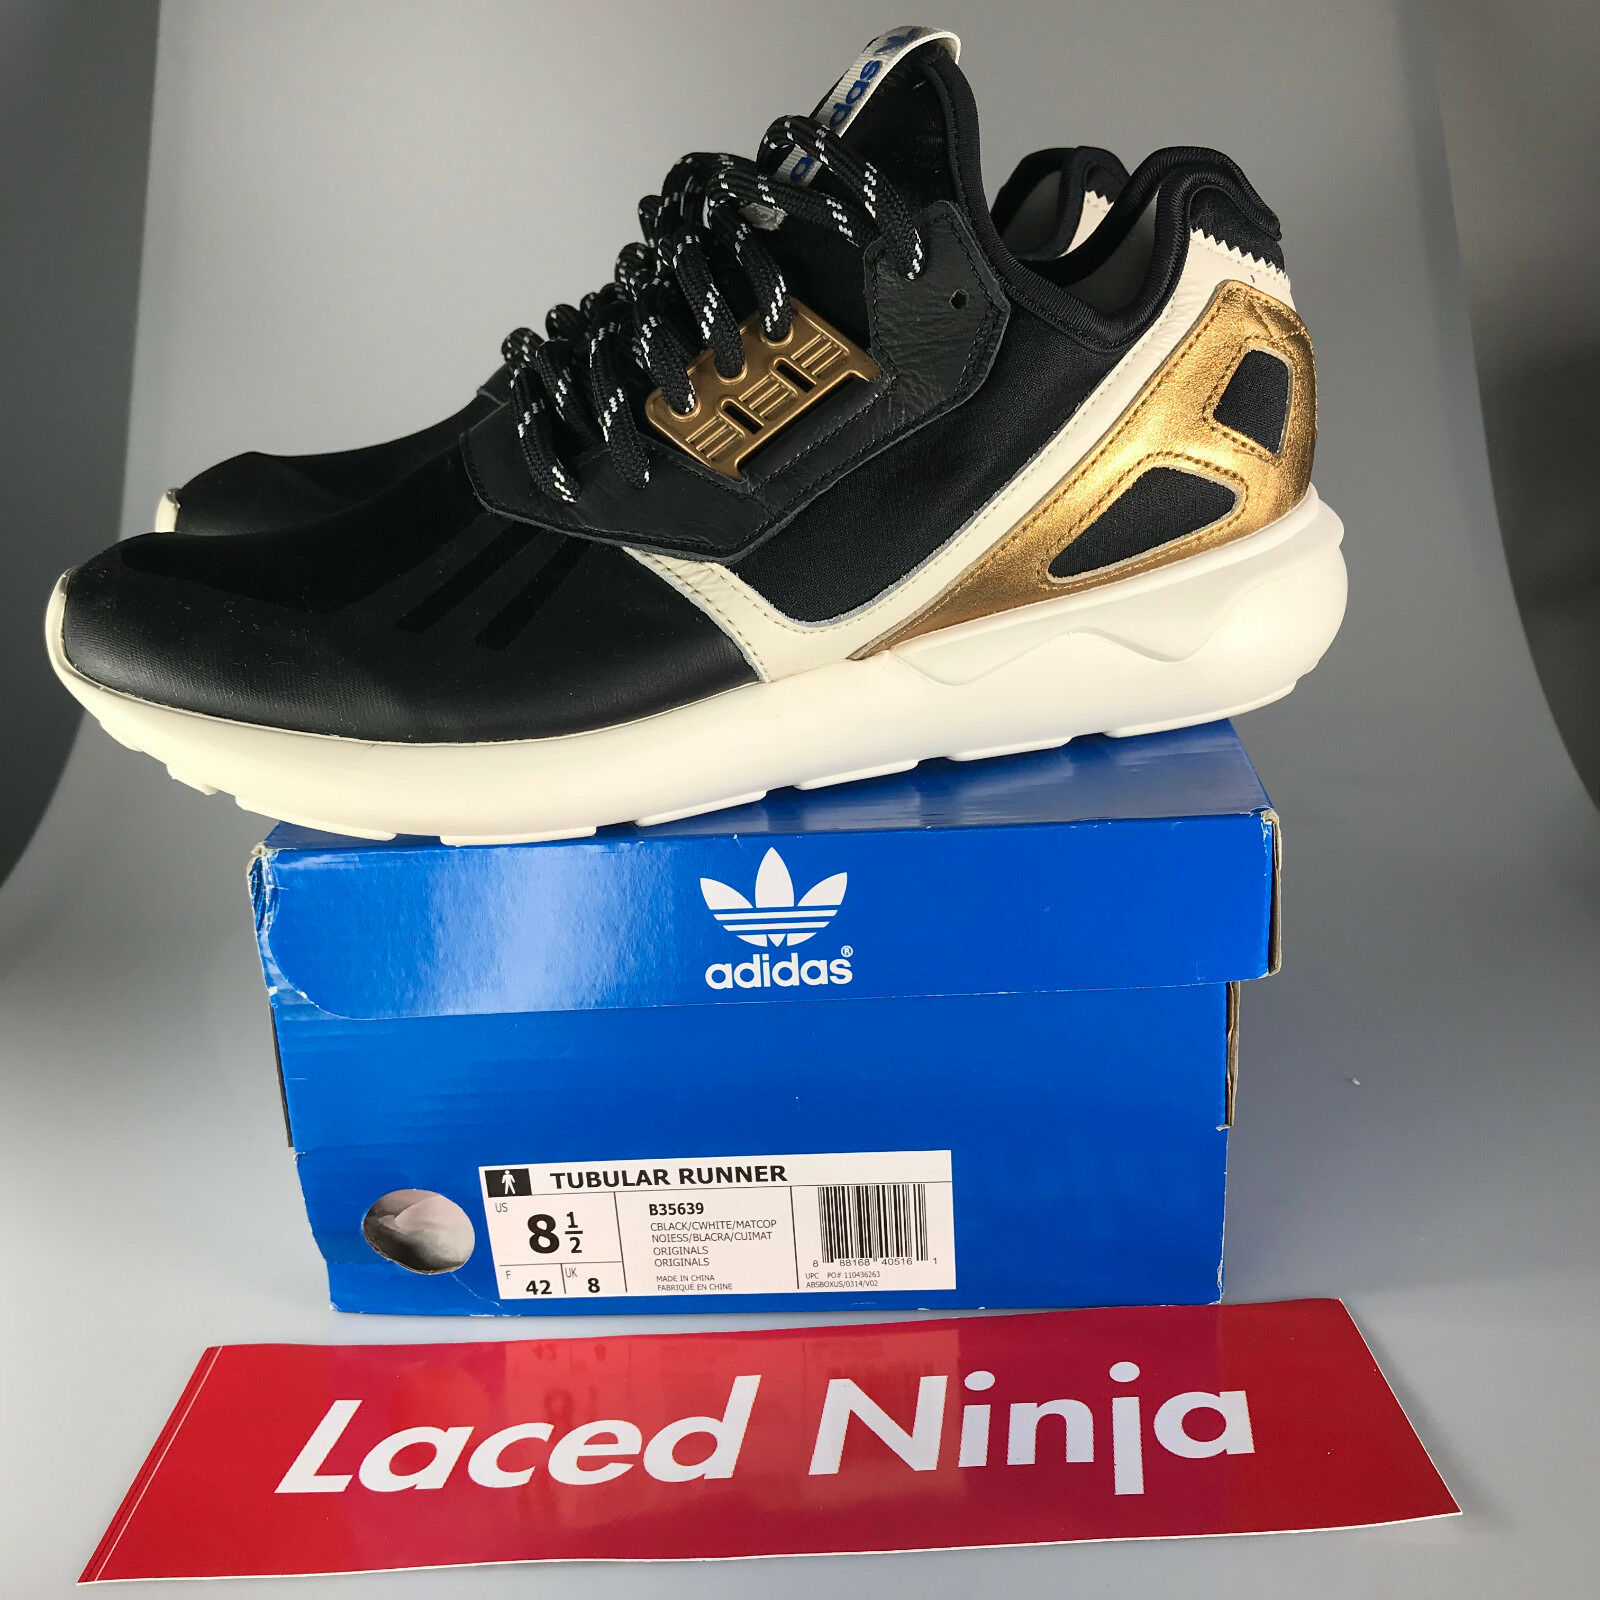 Pre-owned Adidas Mens Tubular Runner Authentic Black/Gold B35639 Size 8.5 Authentic Runner a48aa1